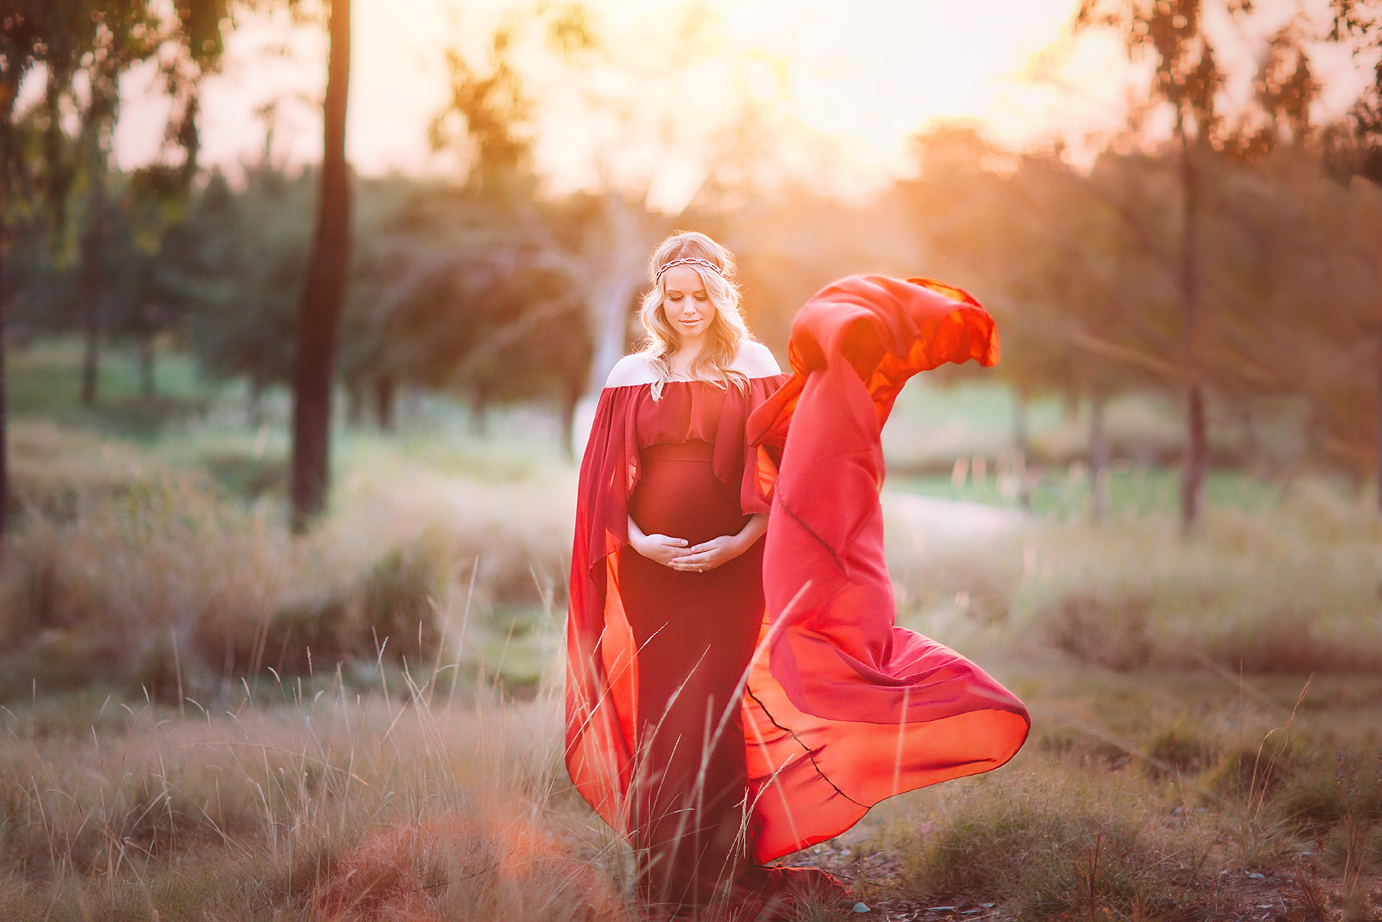 orange-county-maternity-photographer-irvine-woodbury-flowy-gown-red-cape-dramatic-beautiful-sunset-fine-art.jpg